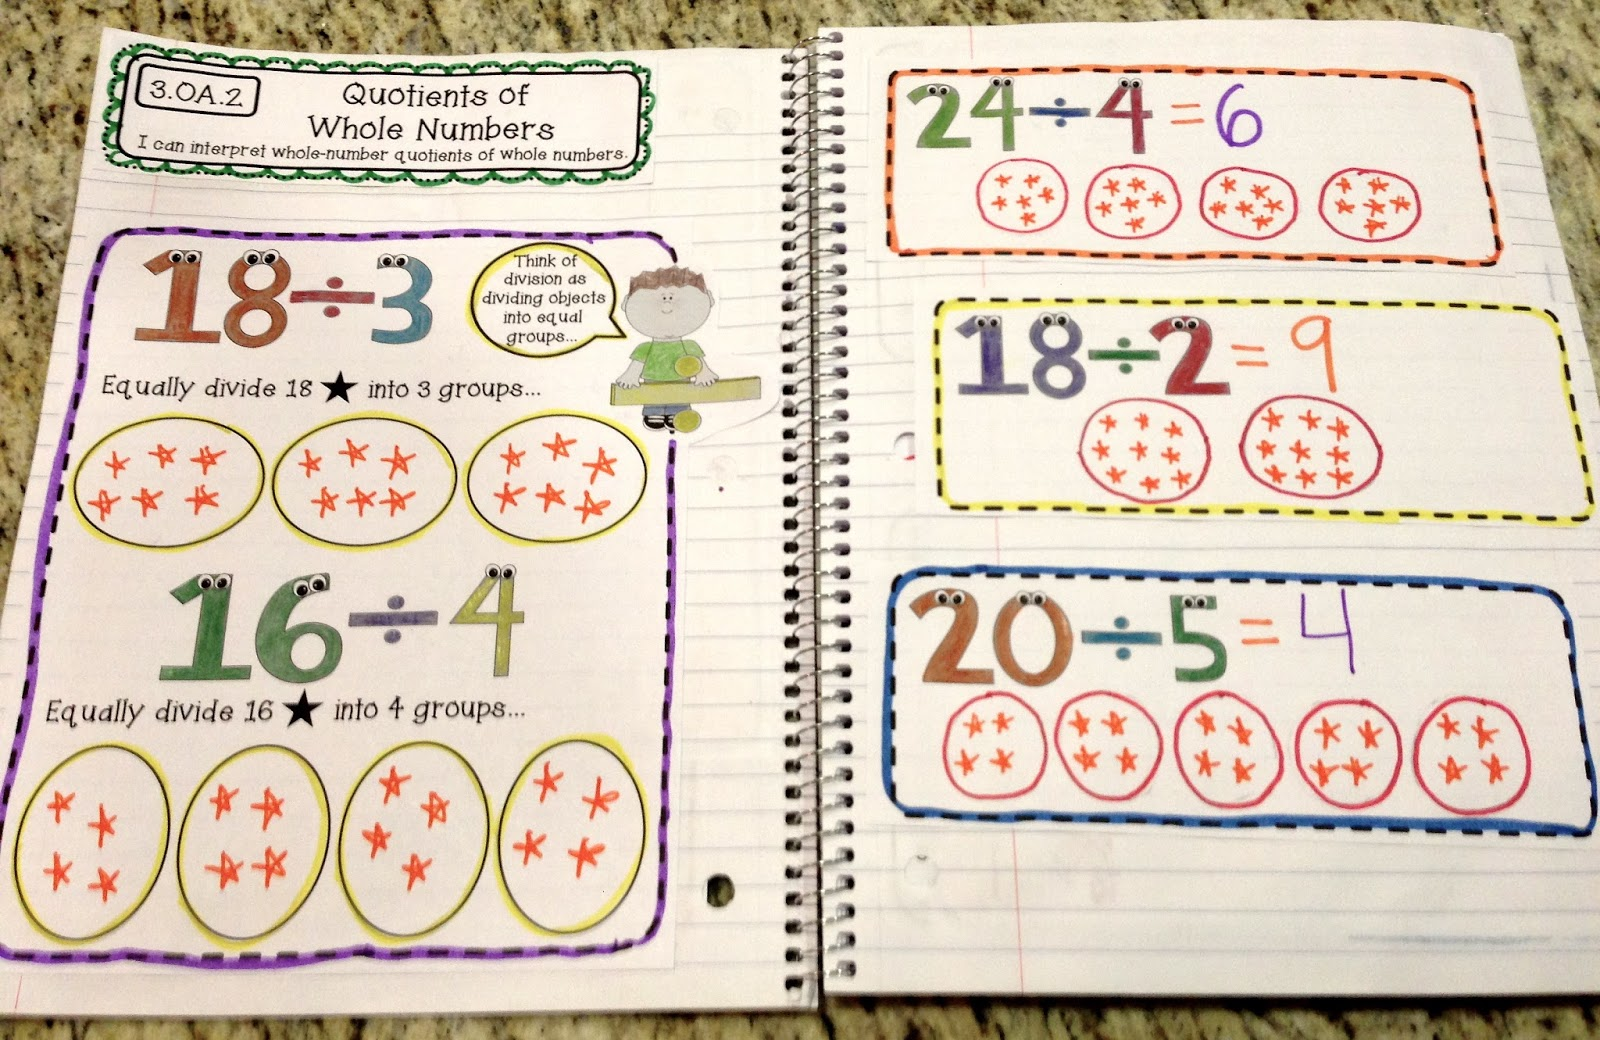 3rd Grade Math Worksheets Division Games And Problems 3 Add ~ Koogra